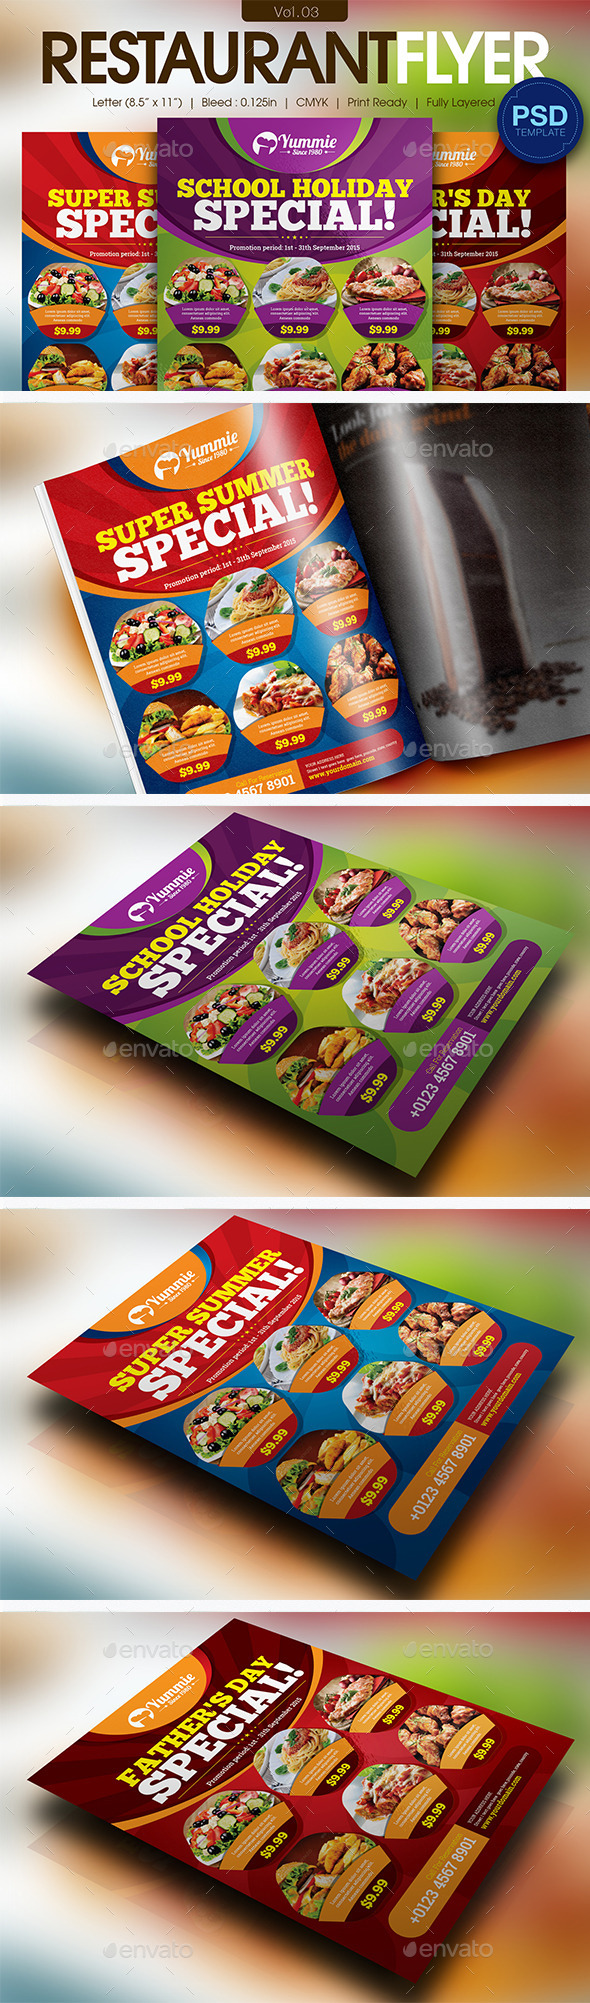 GraphicRiver Restaurant Flyer Vol.03 11595972